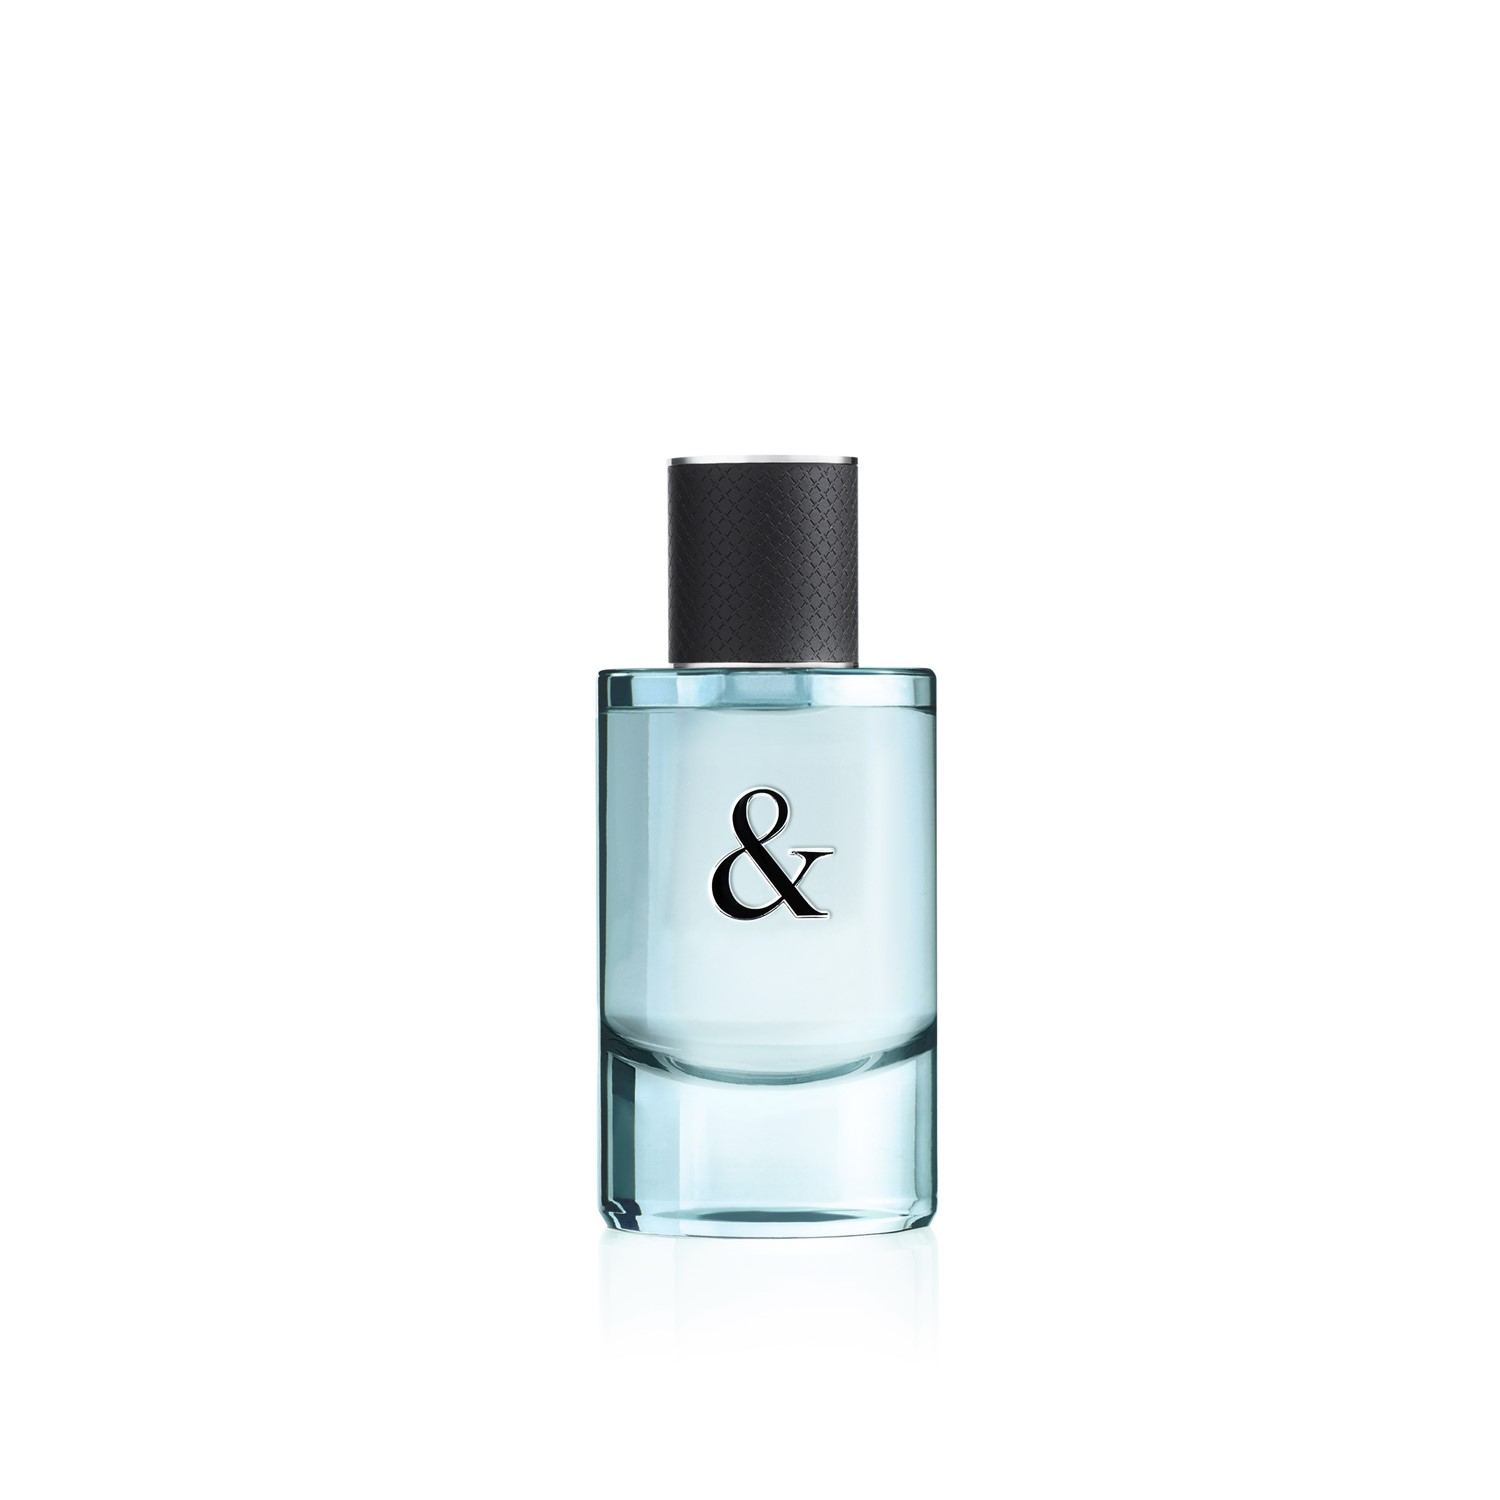 Eau de Toilette Tiffany & Love for Him 50 ml Tiffany & Co